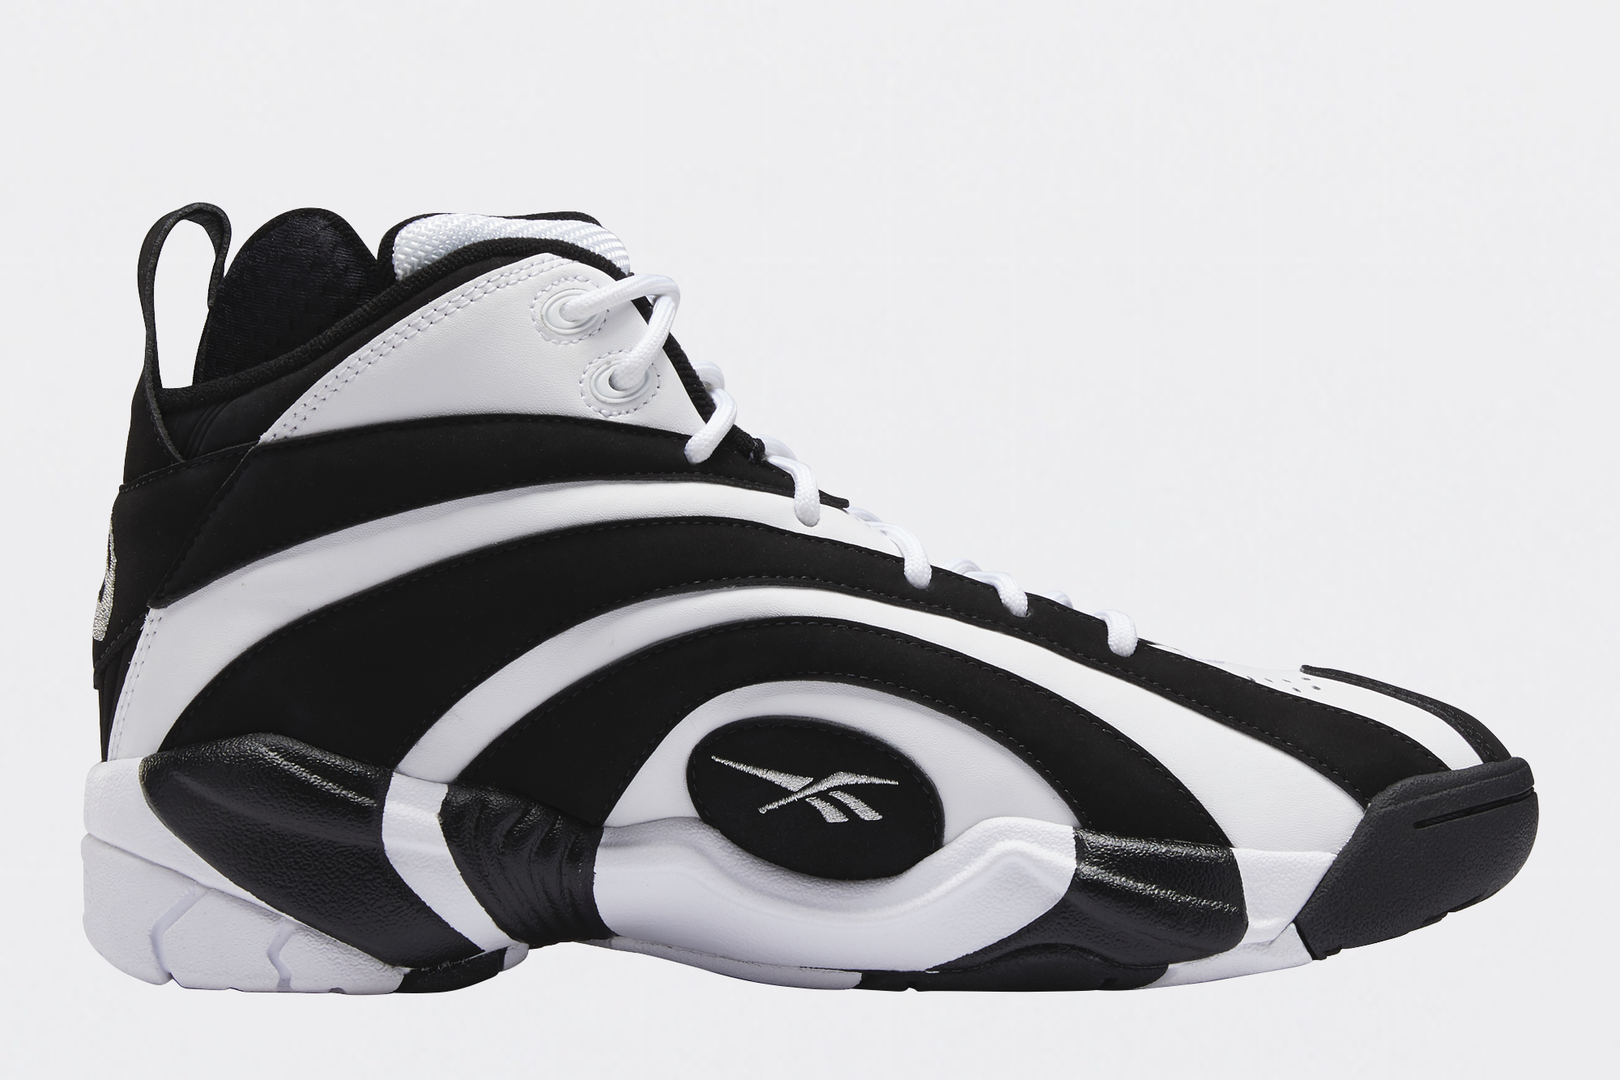 Reebok Is Bringing Back Shaq's OG Black & White Shaqnosis From 1995